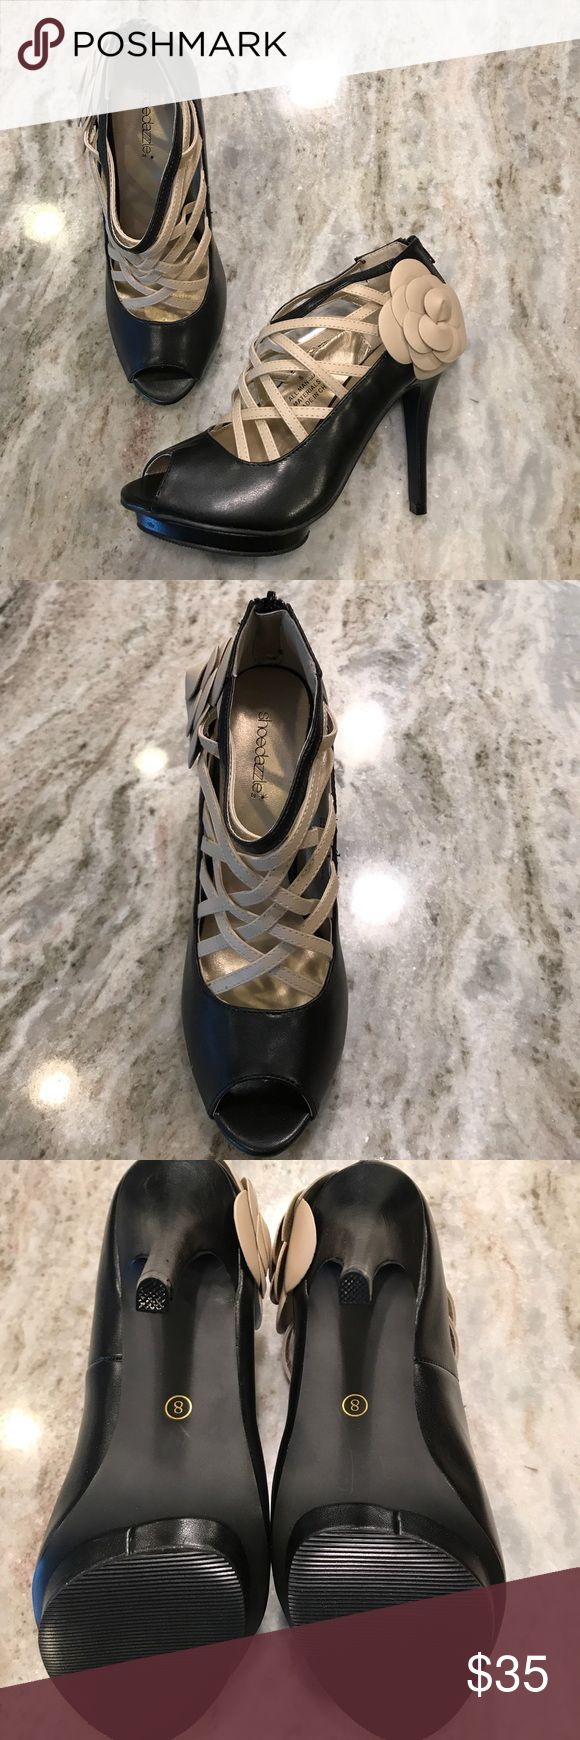 Shoe Dazzle NIB Back Zip Peep Toe Heels Size 8 Shoe Dazzle NIB Back Zip Peep Toe Heels Size 8 - Agyness Style. Never-worn and truly head-turning! Shoe Dazzle Shoes Heels